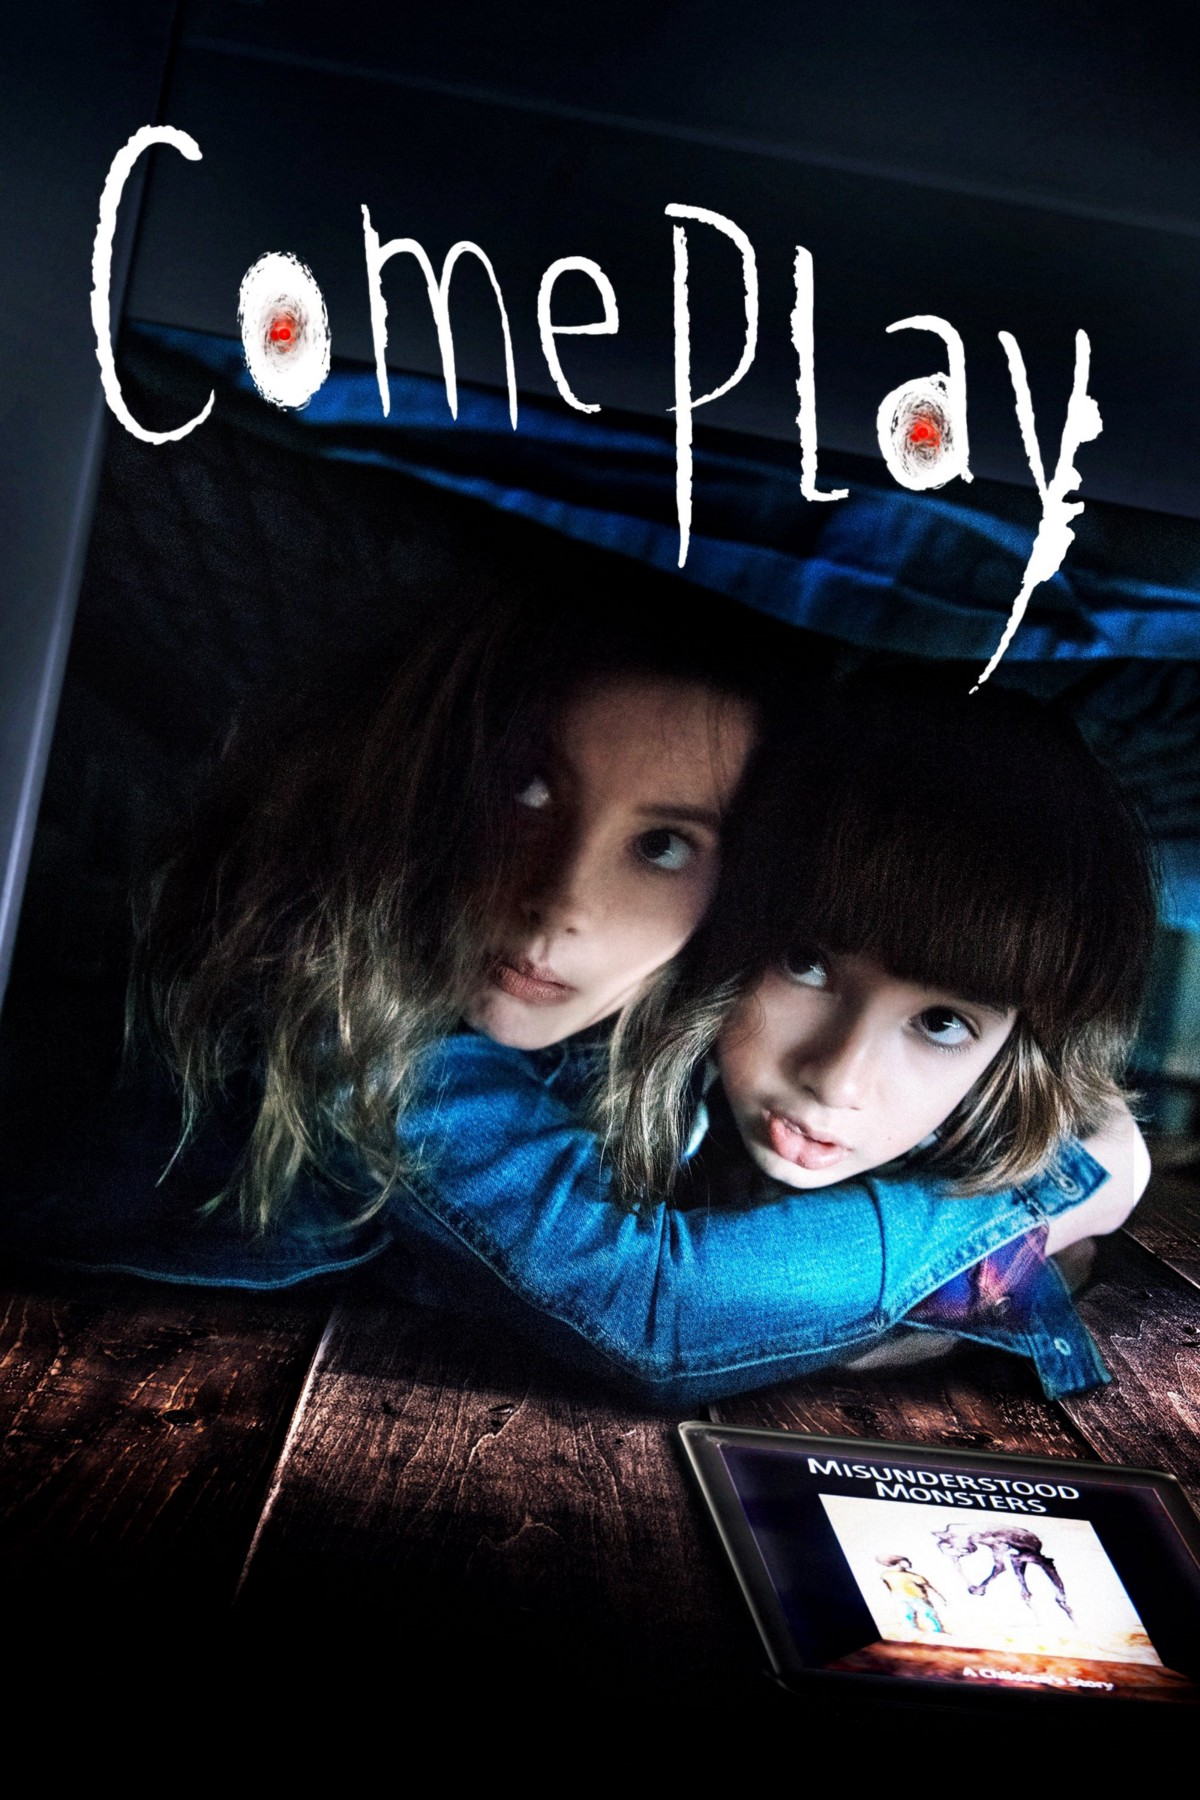 (Watch) — Come Play(2020) Full Movie STREAM (1080p) | Come Play (2020) watch full streaming